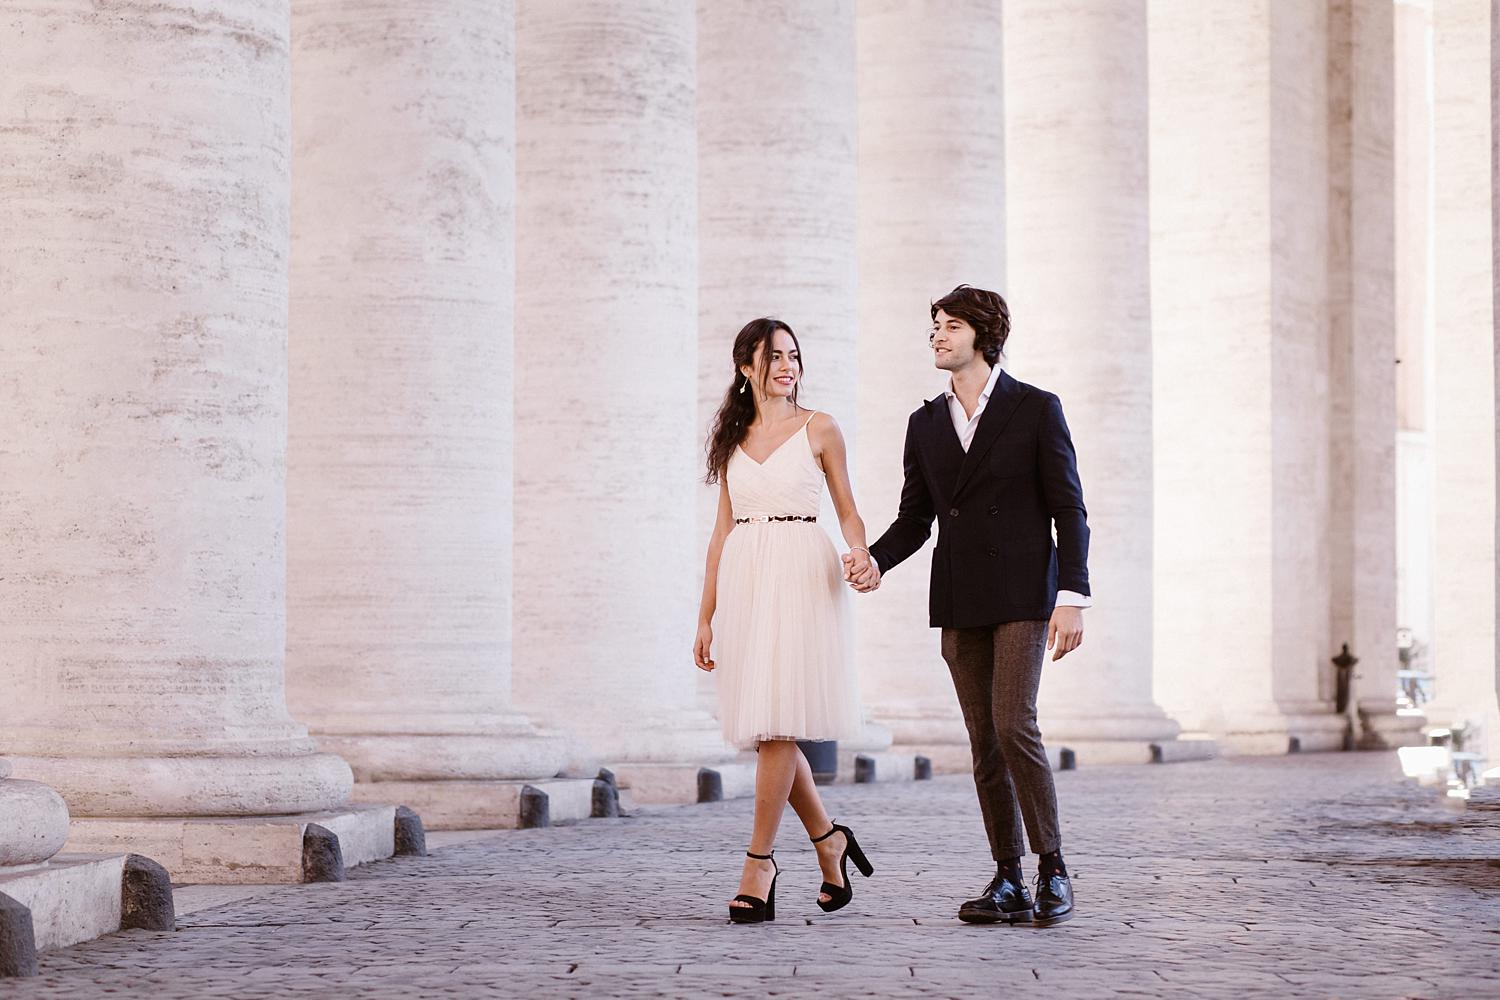 gs weddingphotographer rome 02 - Giulia & Simone - Elegant Couple Shooting in Rome